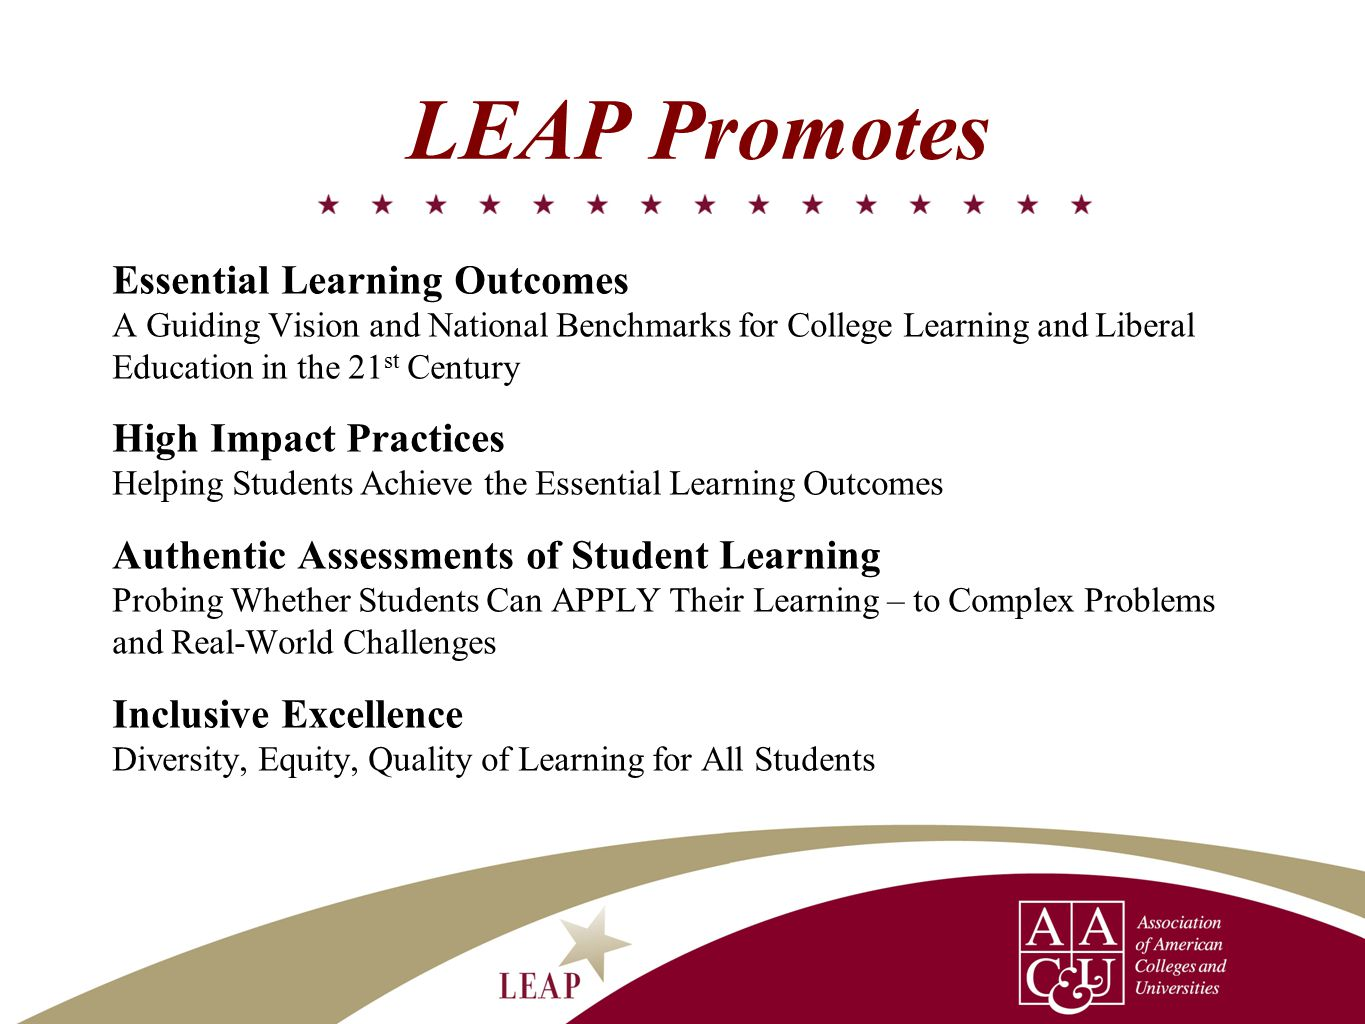 LEAP Promotes Essential Learning Outcomes A Guiding Vision and National Benchmarks for College Learning and Liberal Education in the 21 st Century High Impact Practices Helping Students Achieve the Essential Learning Outcomes Authentic Assessments of Student Learning Probing Whether Students Can APPLY Their Learning – to Complex Problems and Real-World Challenges Inclusive Excellence Diversity, Equity, Quality of Learning for All Students